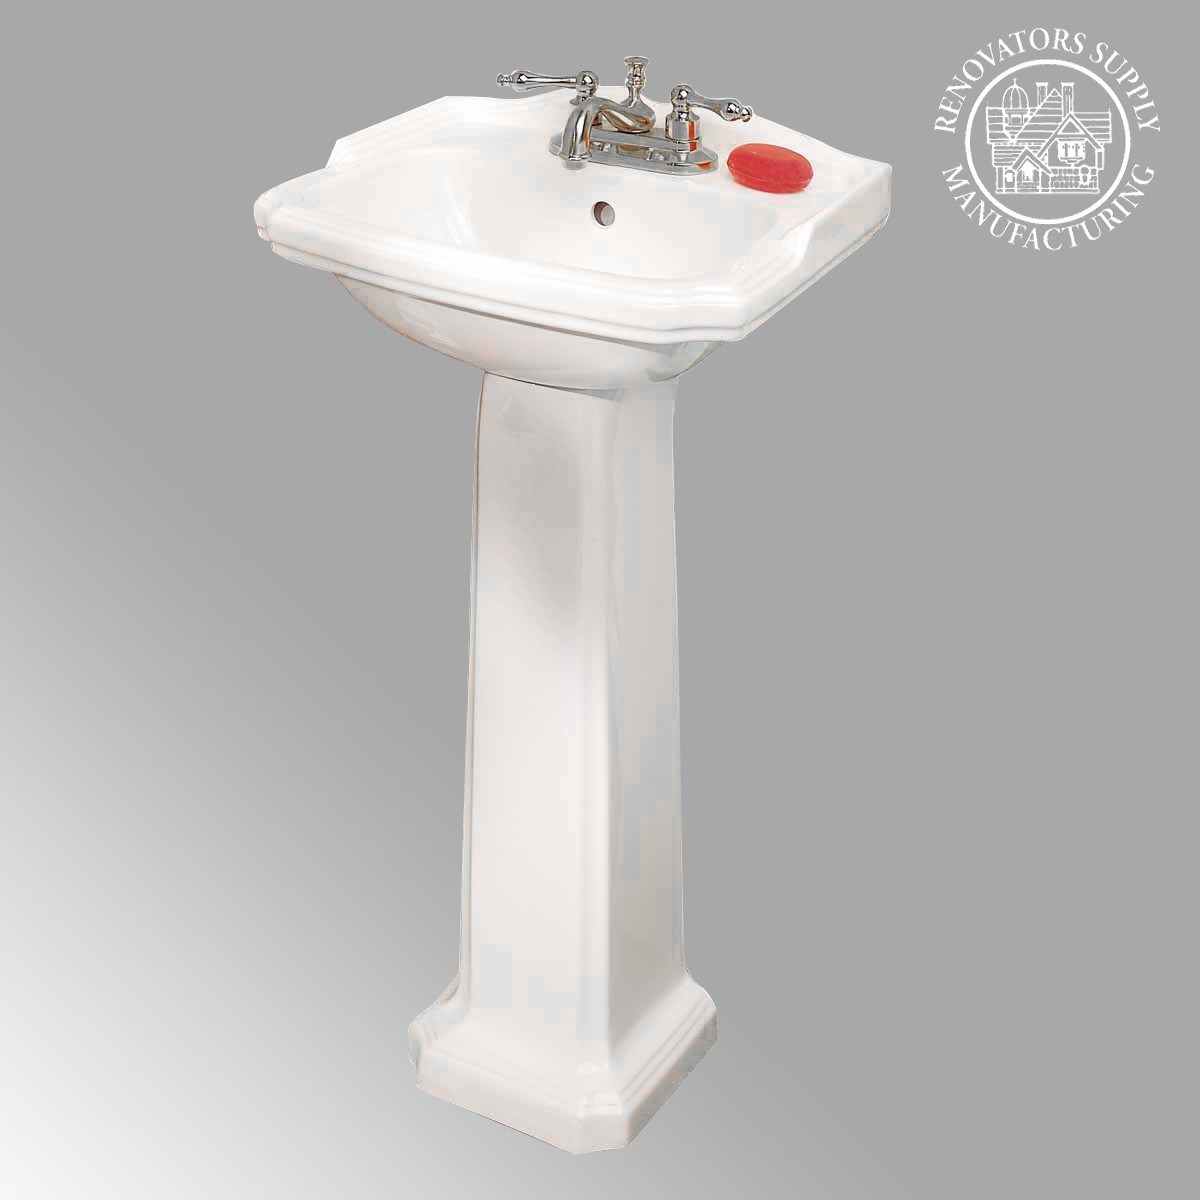 Space Saver Bathroom Sink : Pedestal Sink White Bathroom China Cloakroom Space-saver